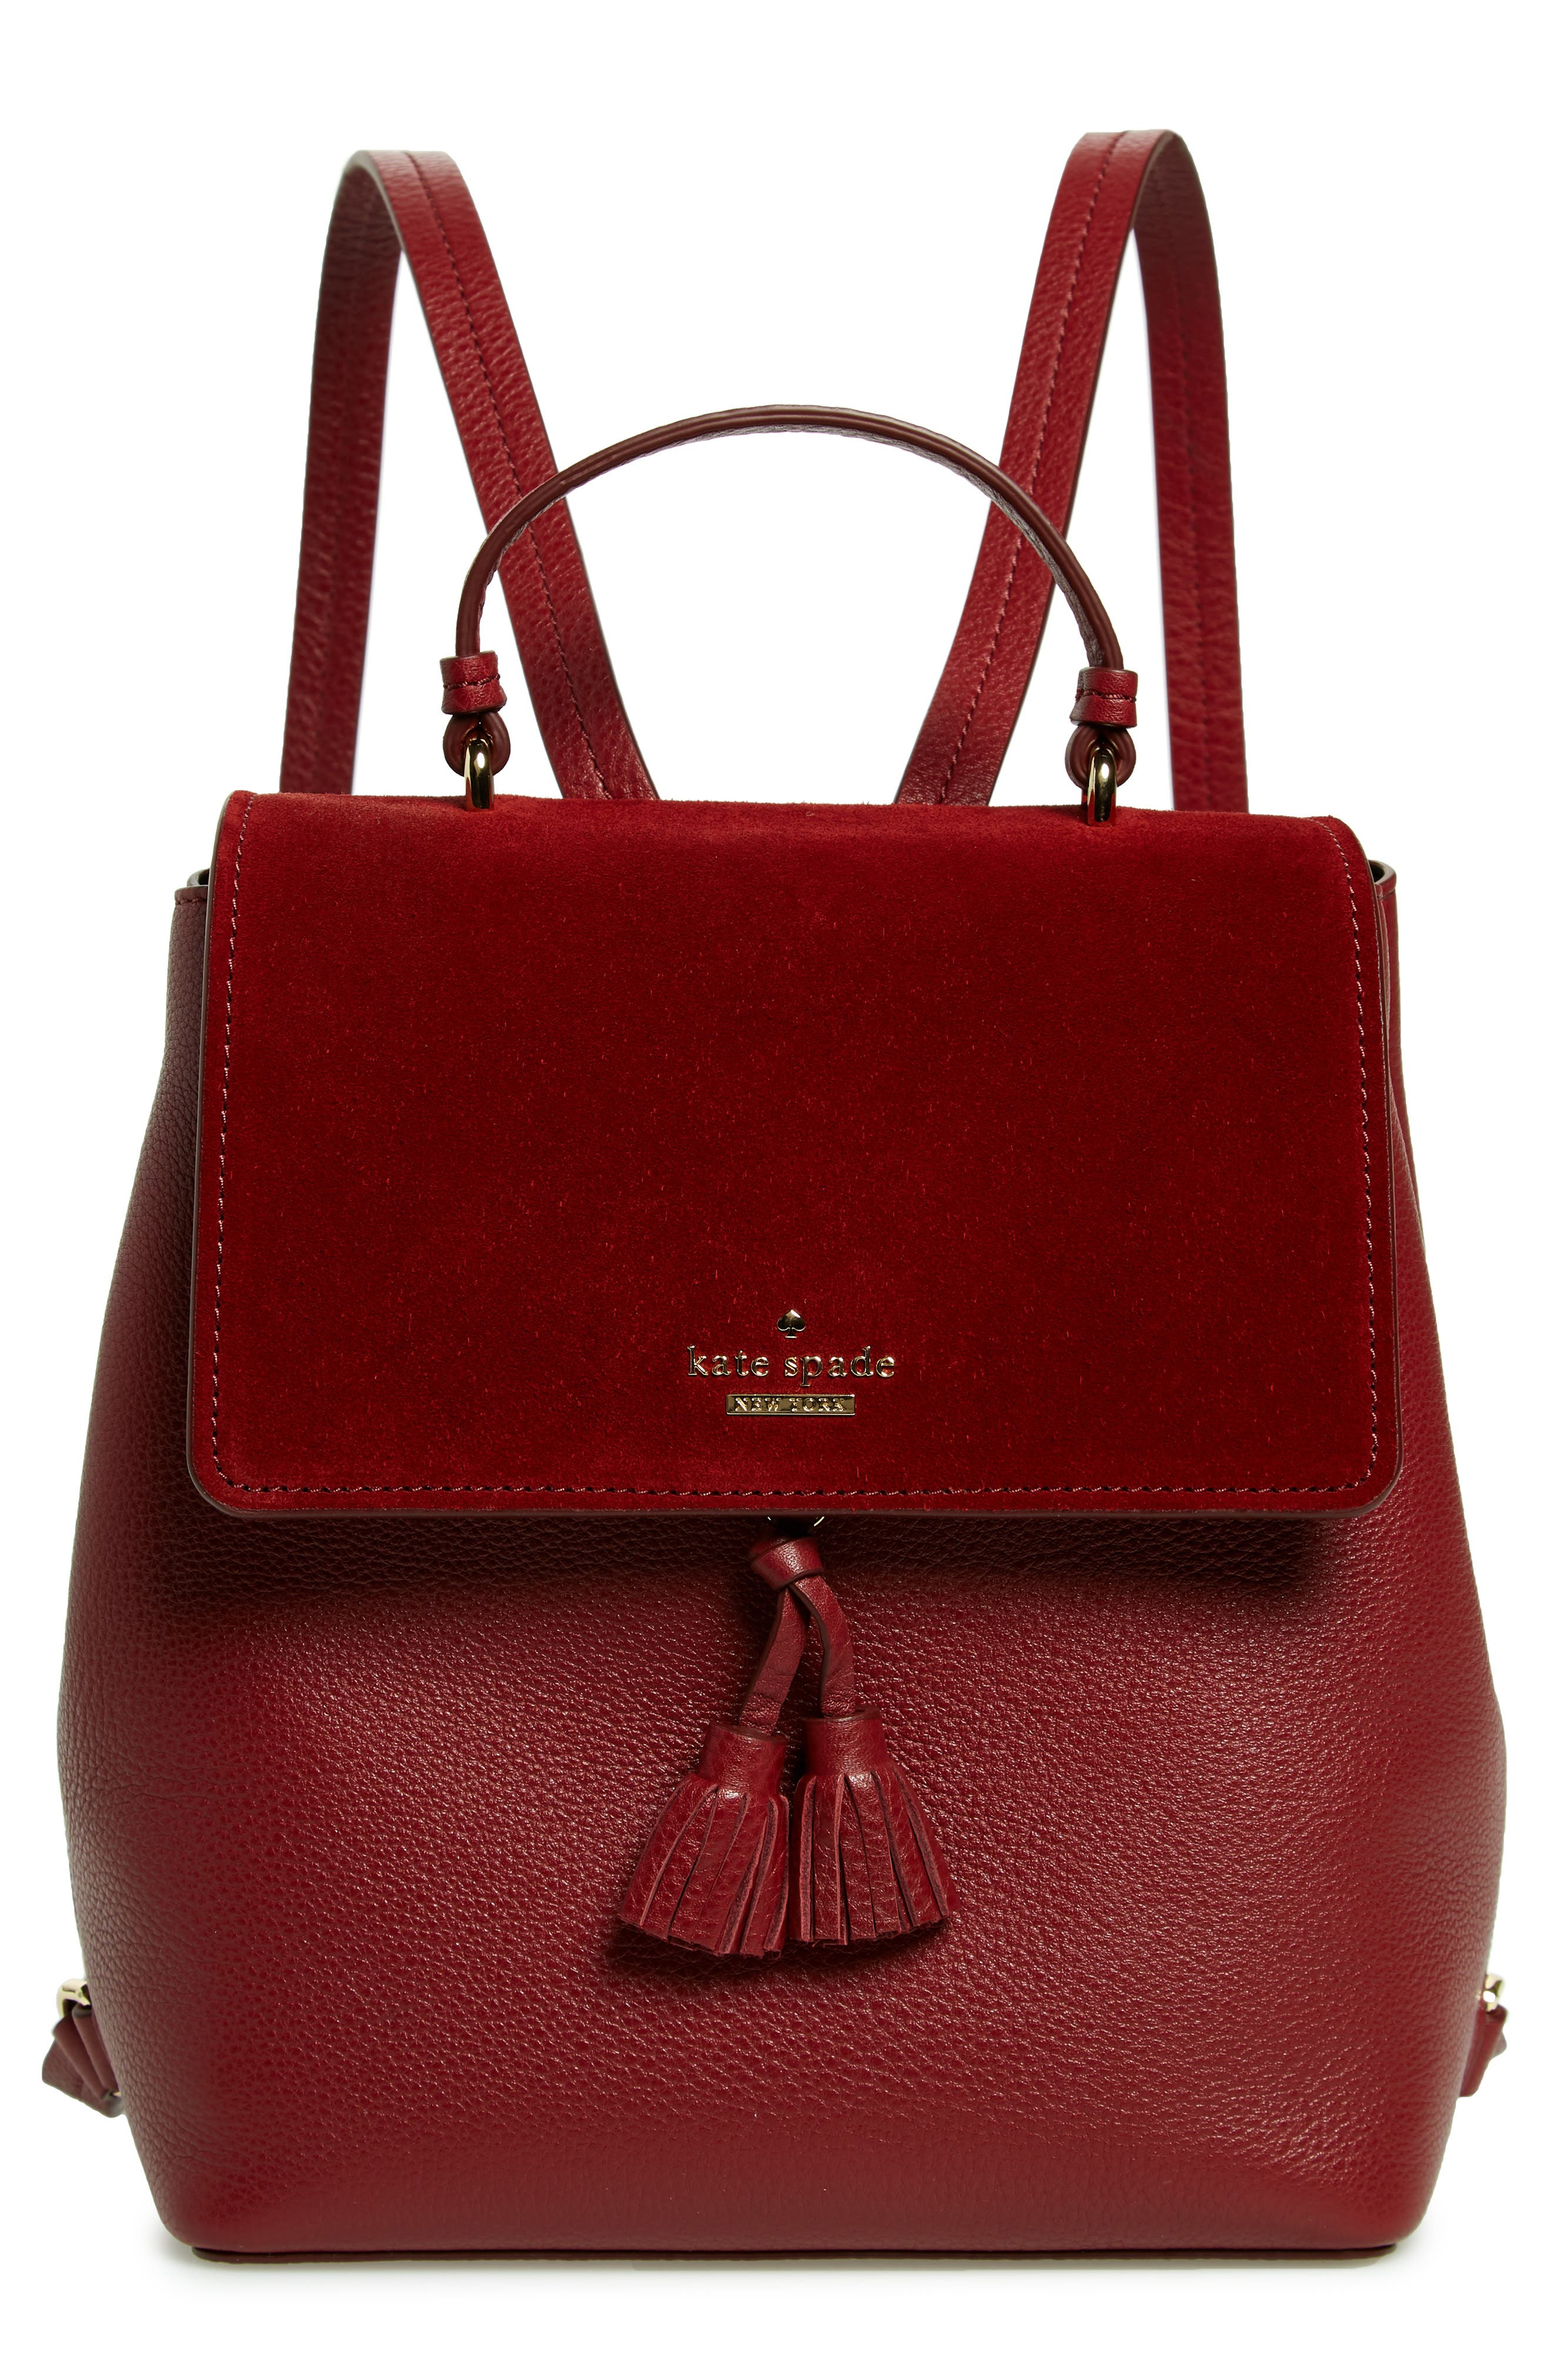 KATE SPADE NEW YORK,                             hayes street - teba leather & suede backpack,                             Main thumbnail 1, color,                             600